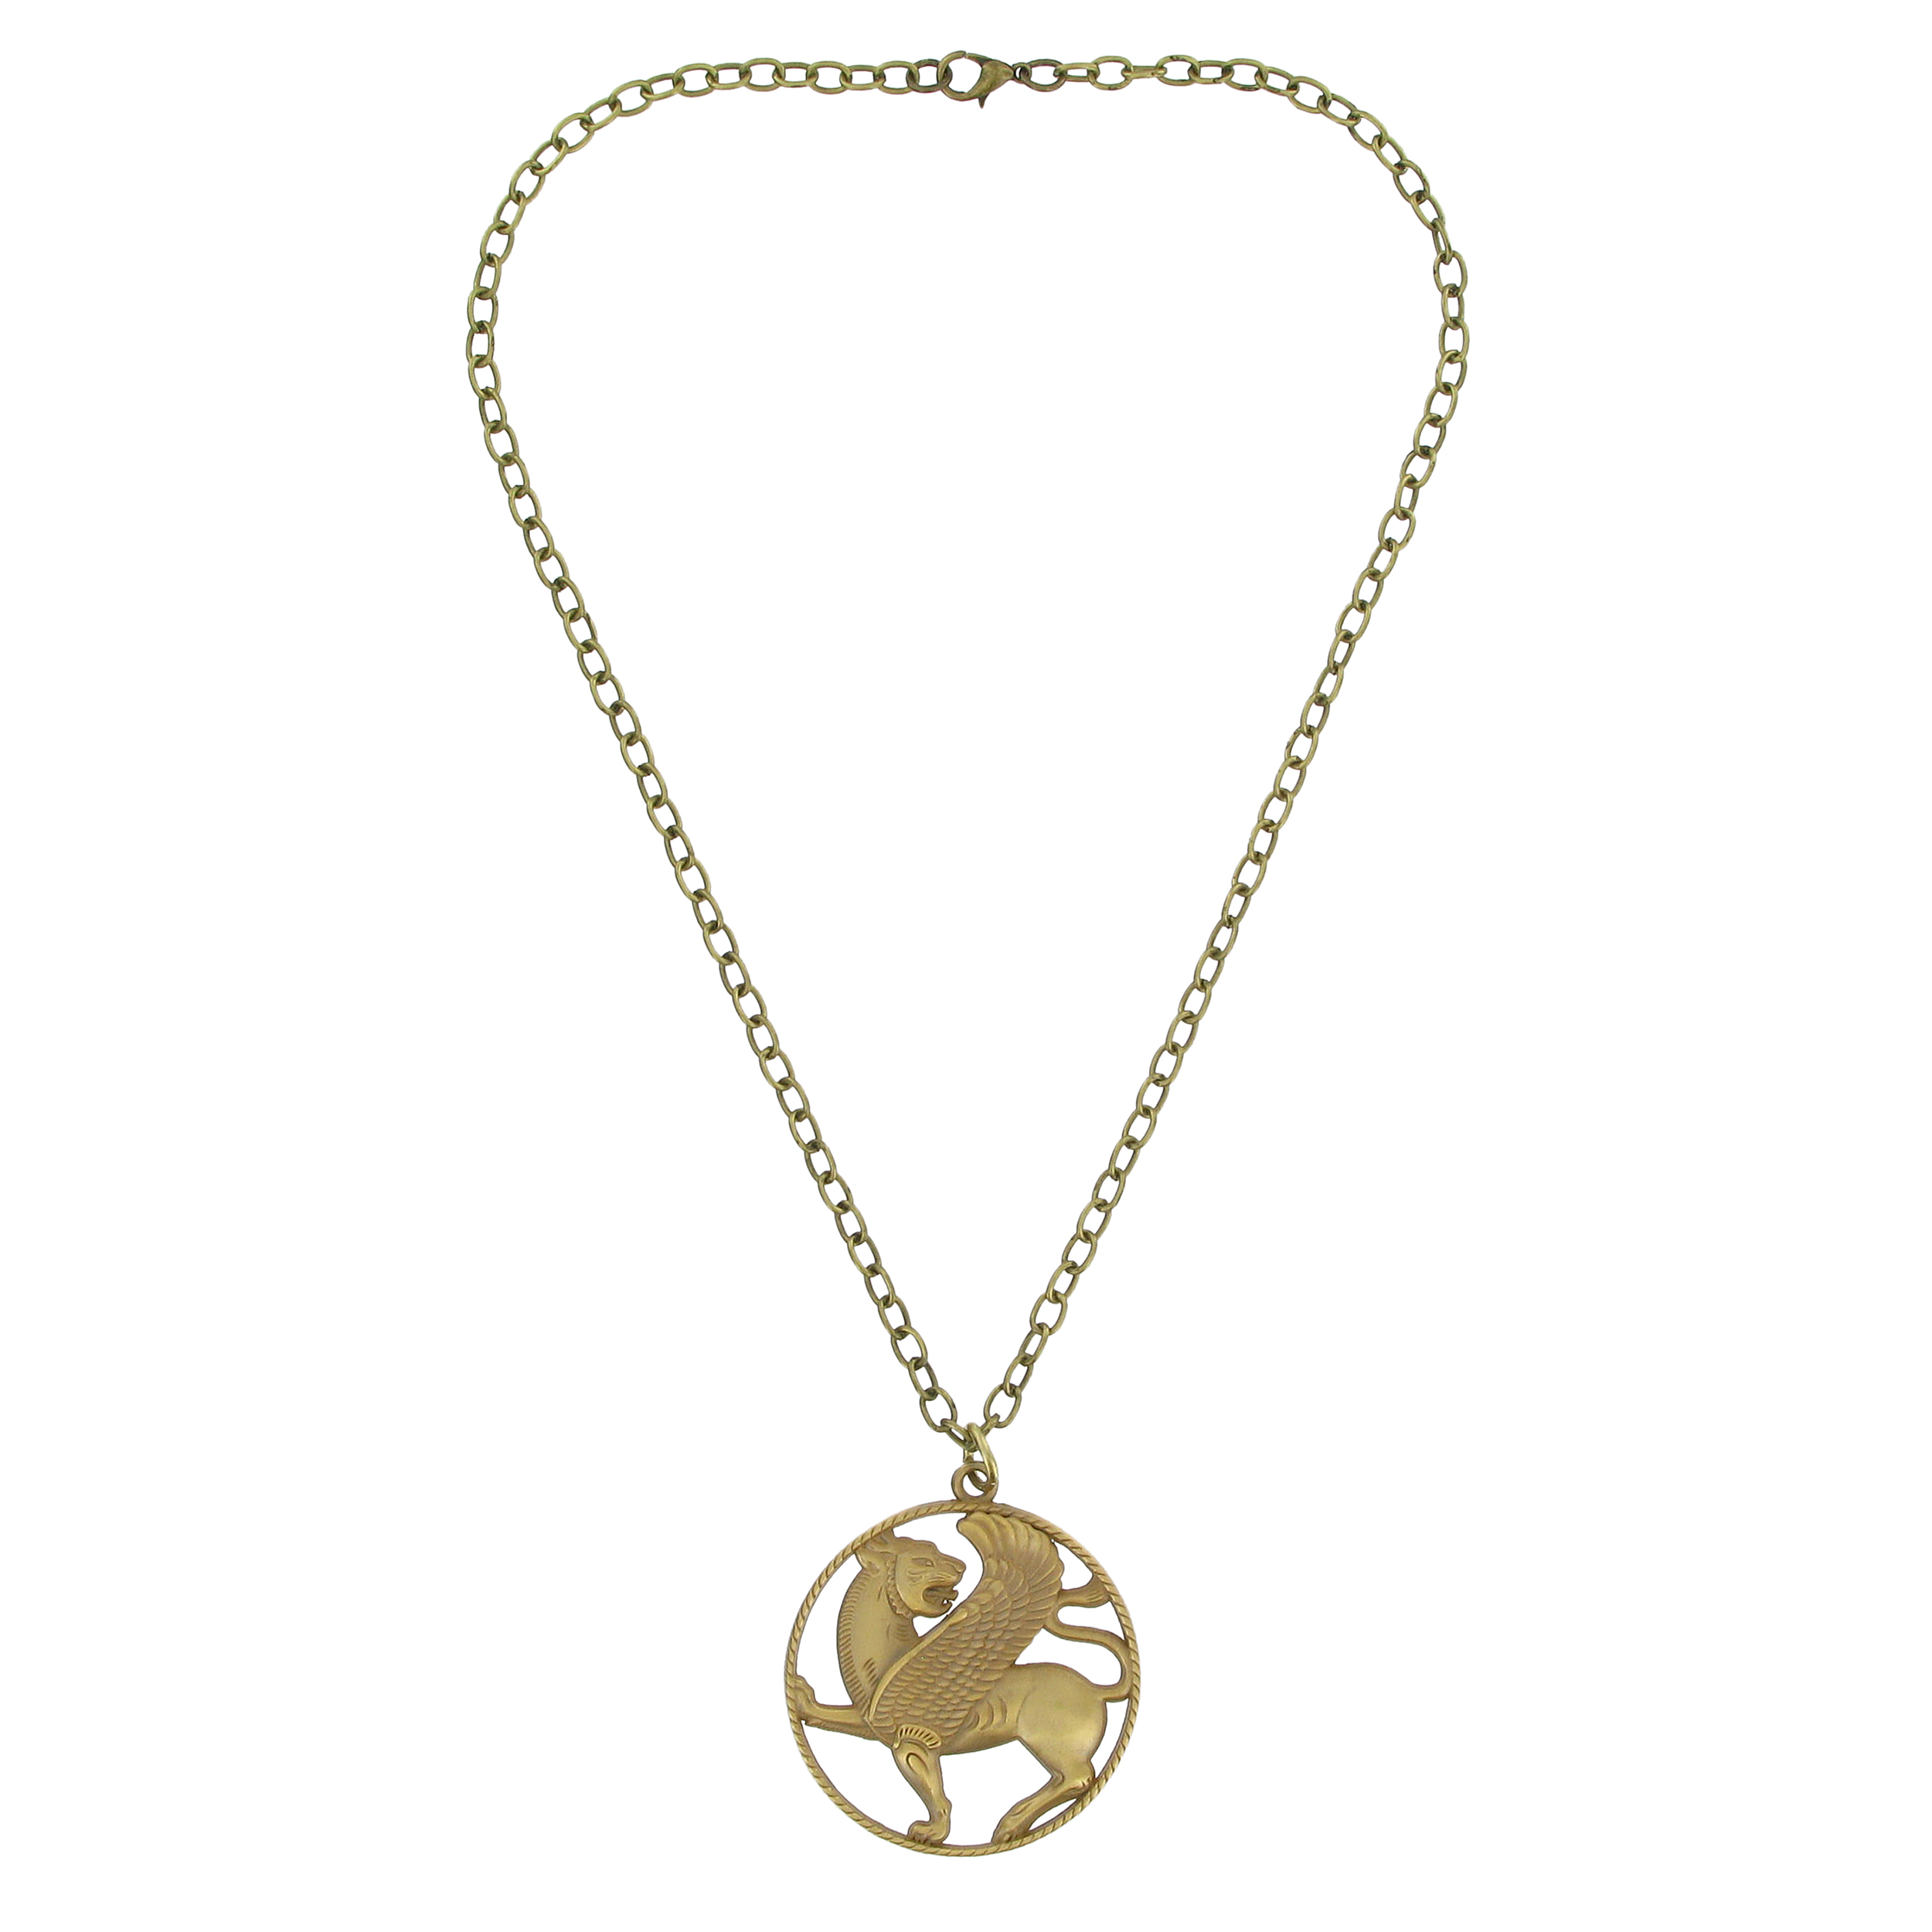 Winged Lioness necklace